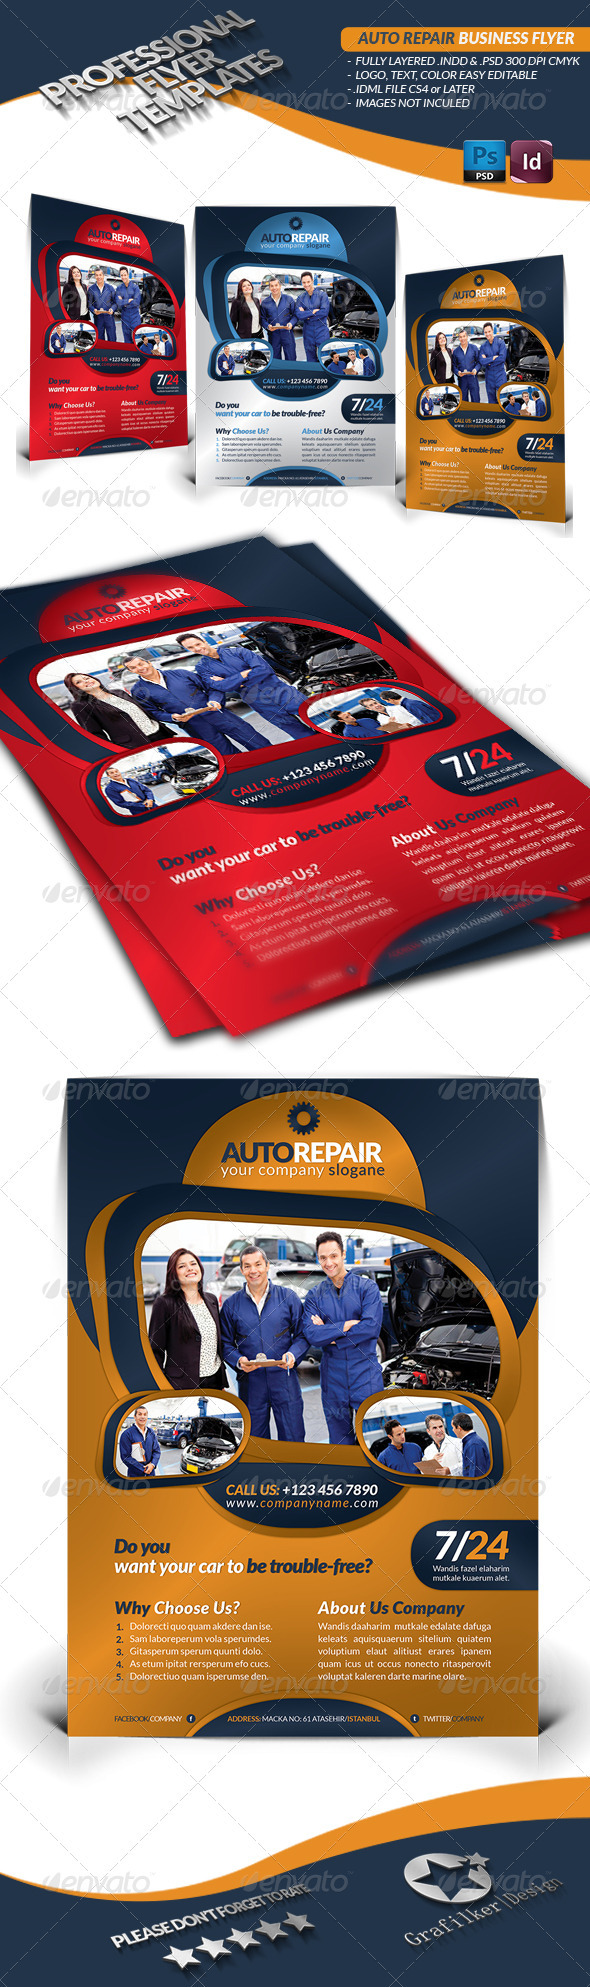 Auto Repair Business Flyer